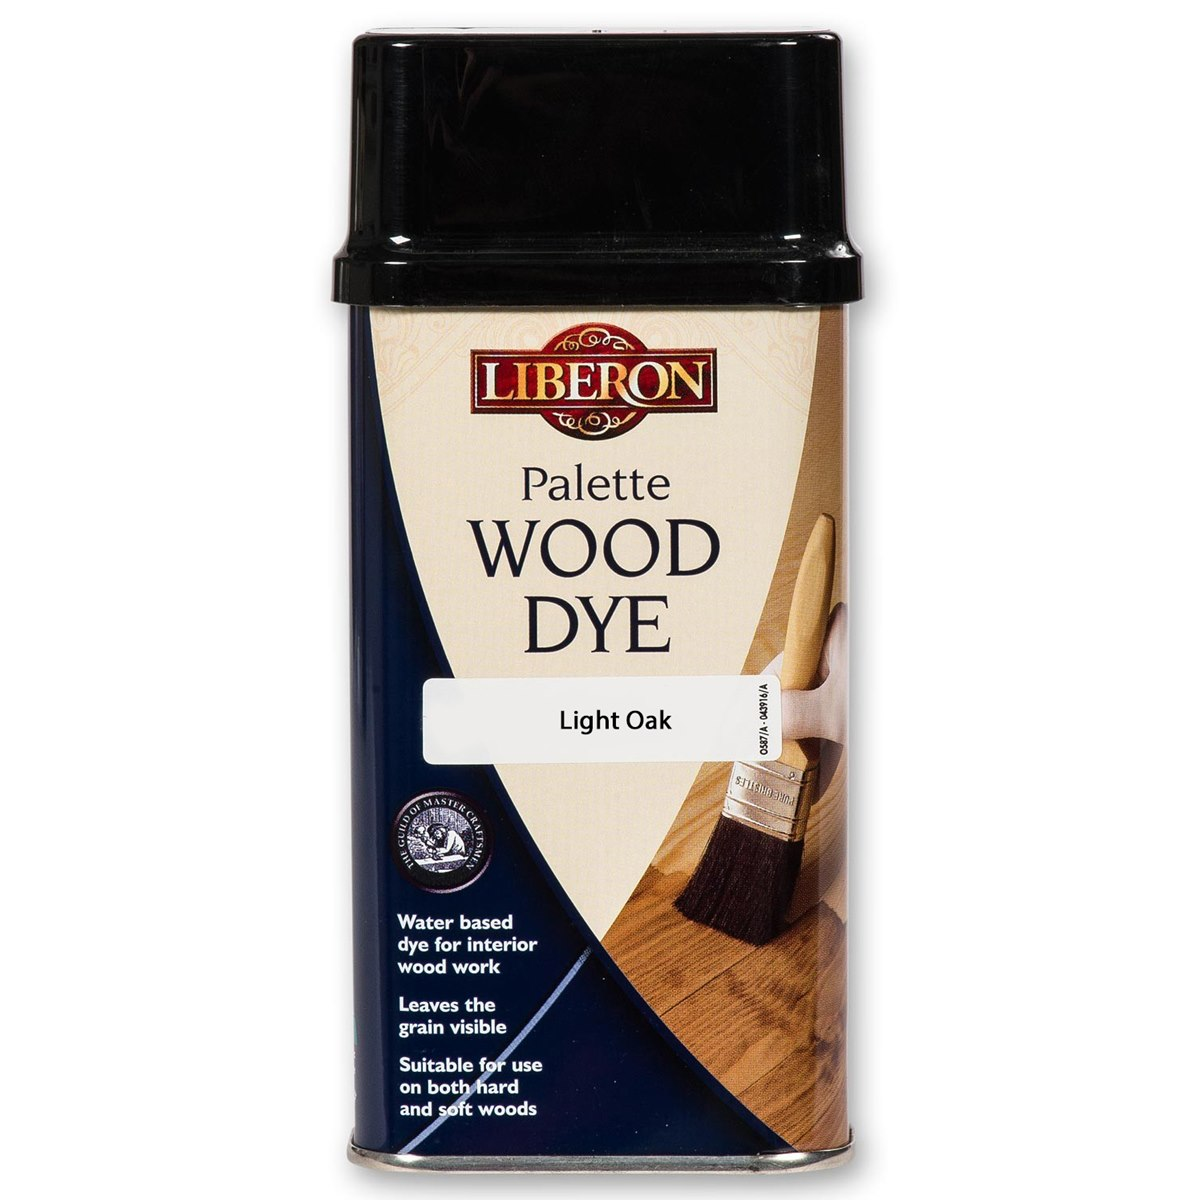 Liberon Palette Wood Dye Light Oak 250ml